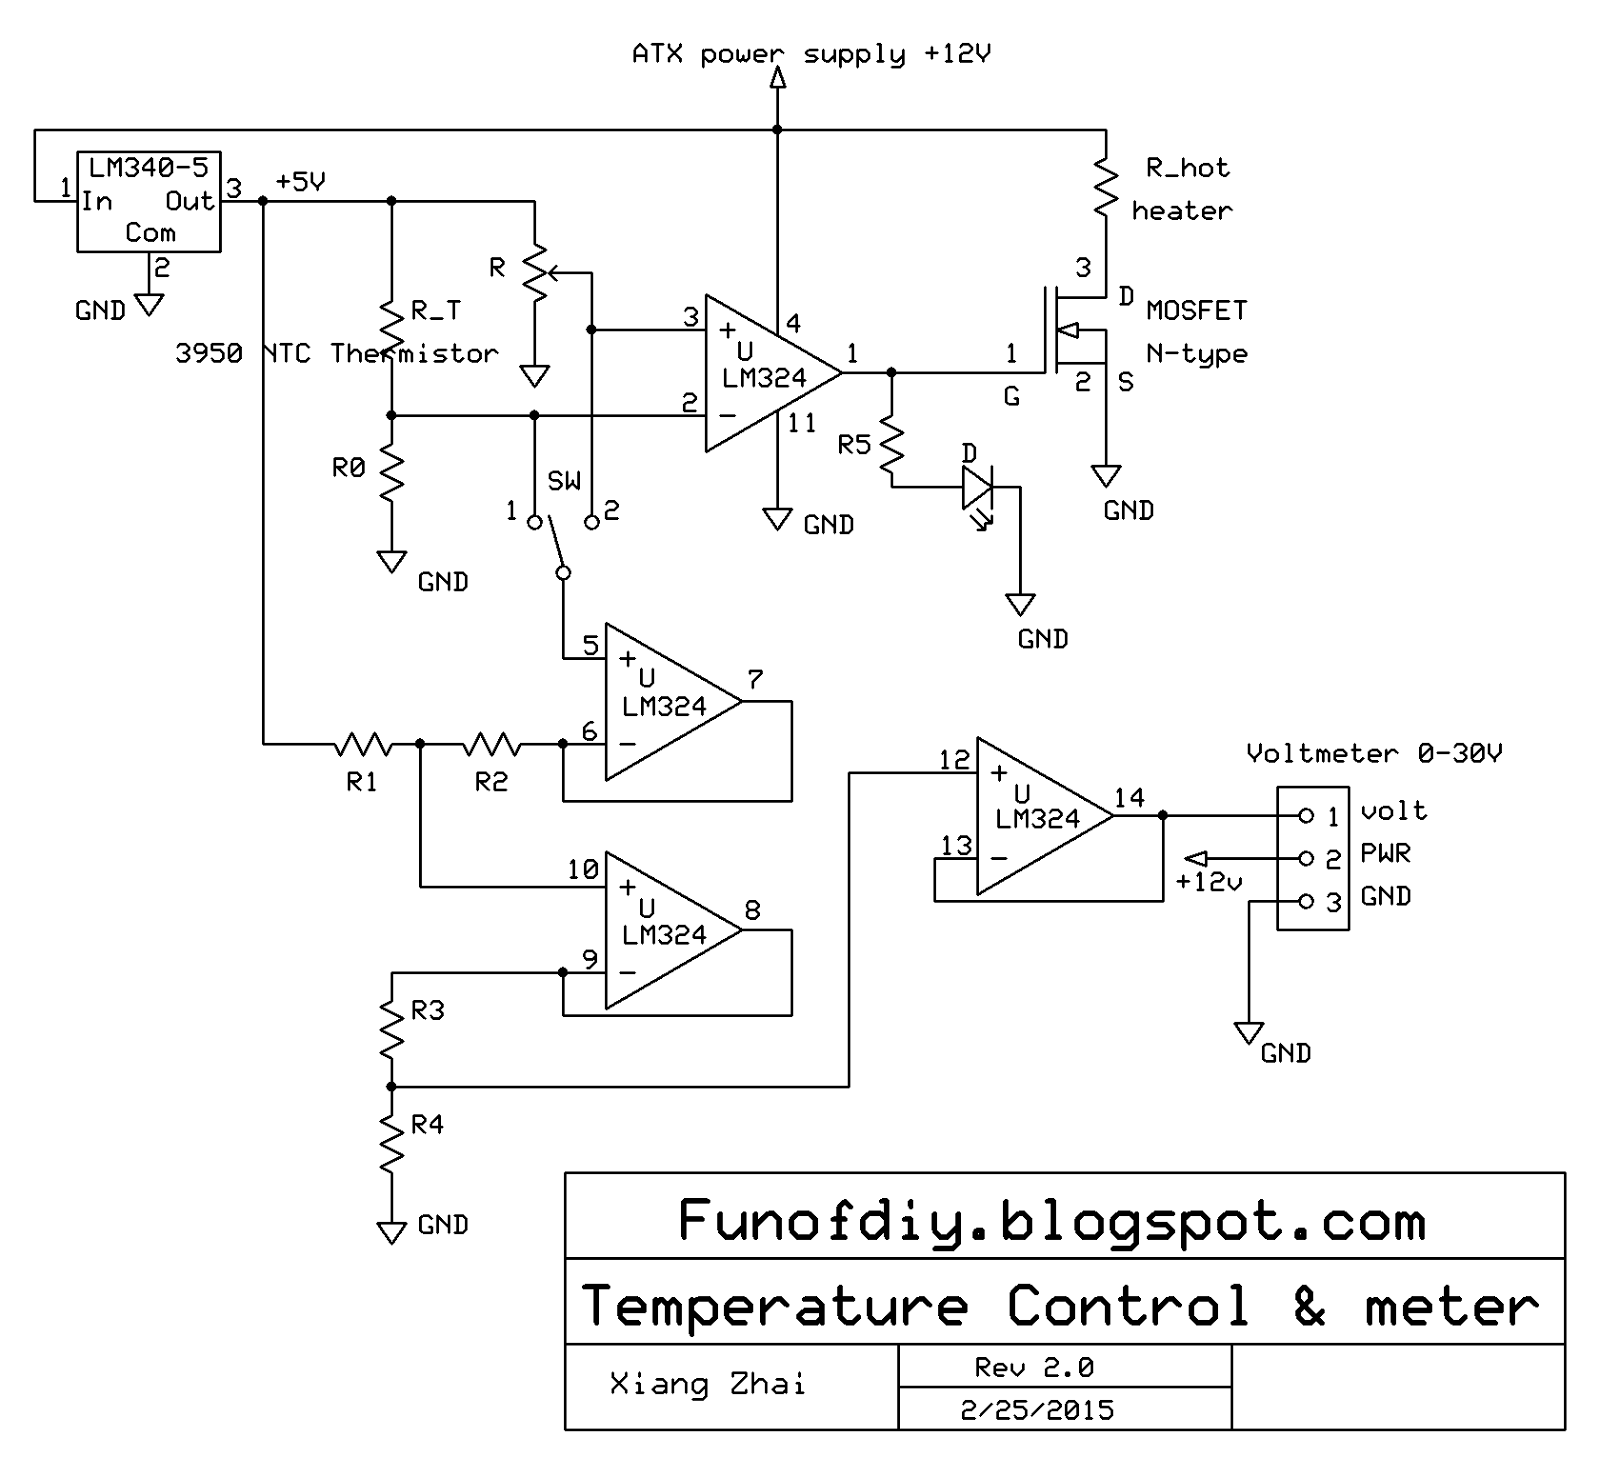 power supply is required the circuit diagram is shown below #2C2C2C